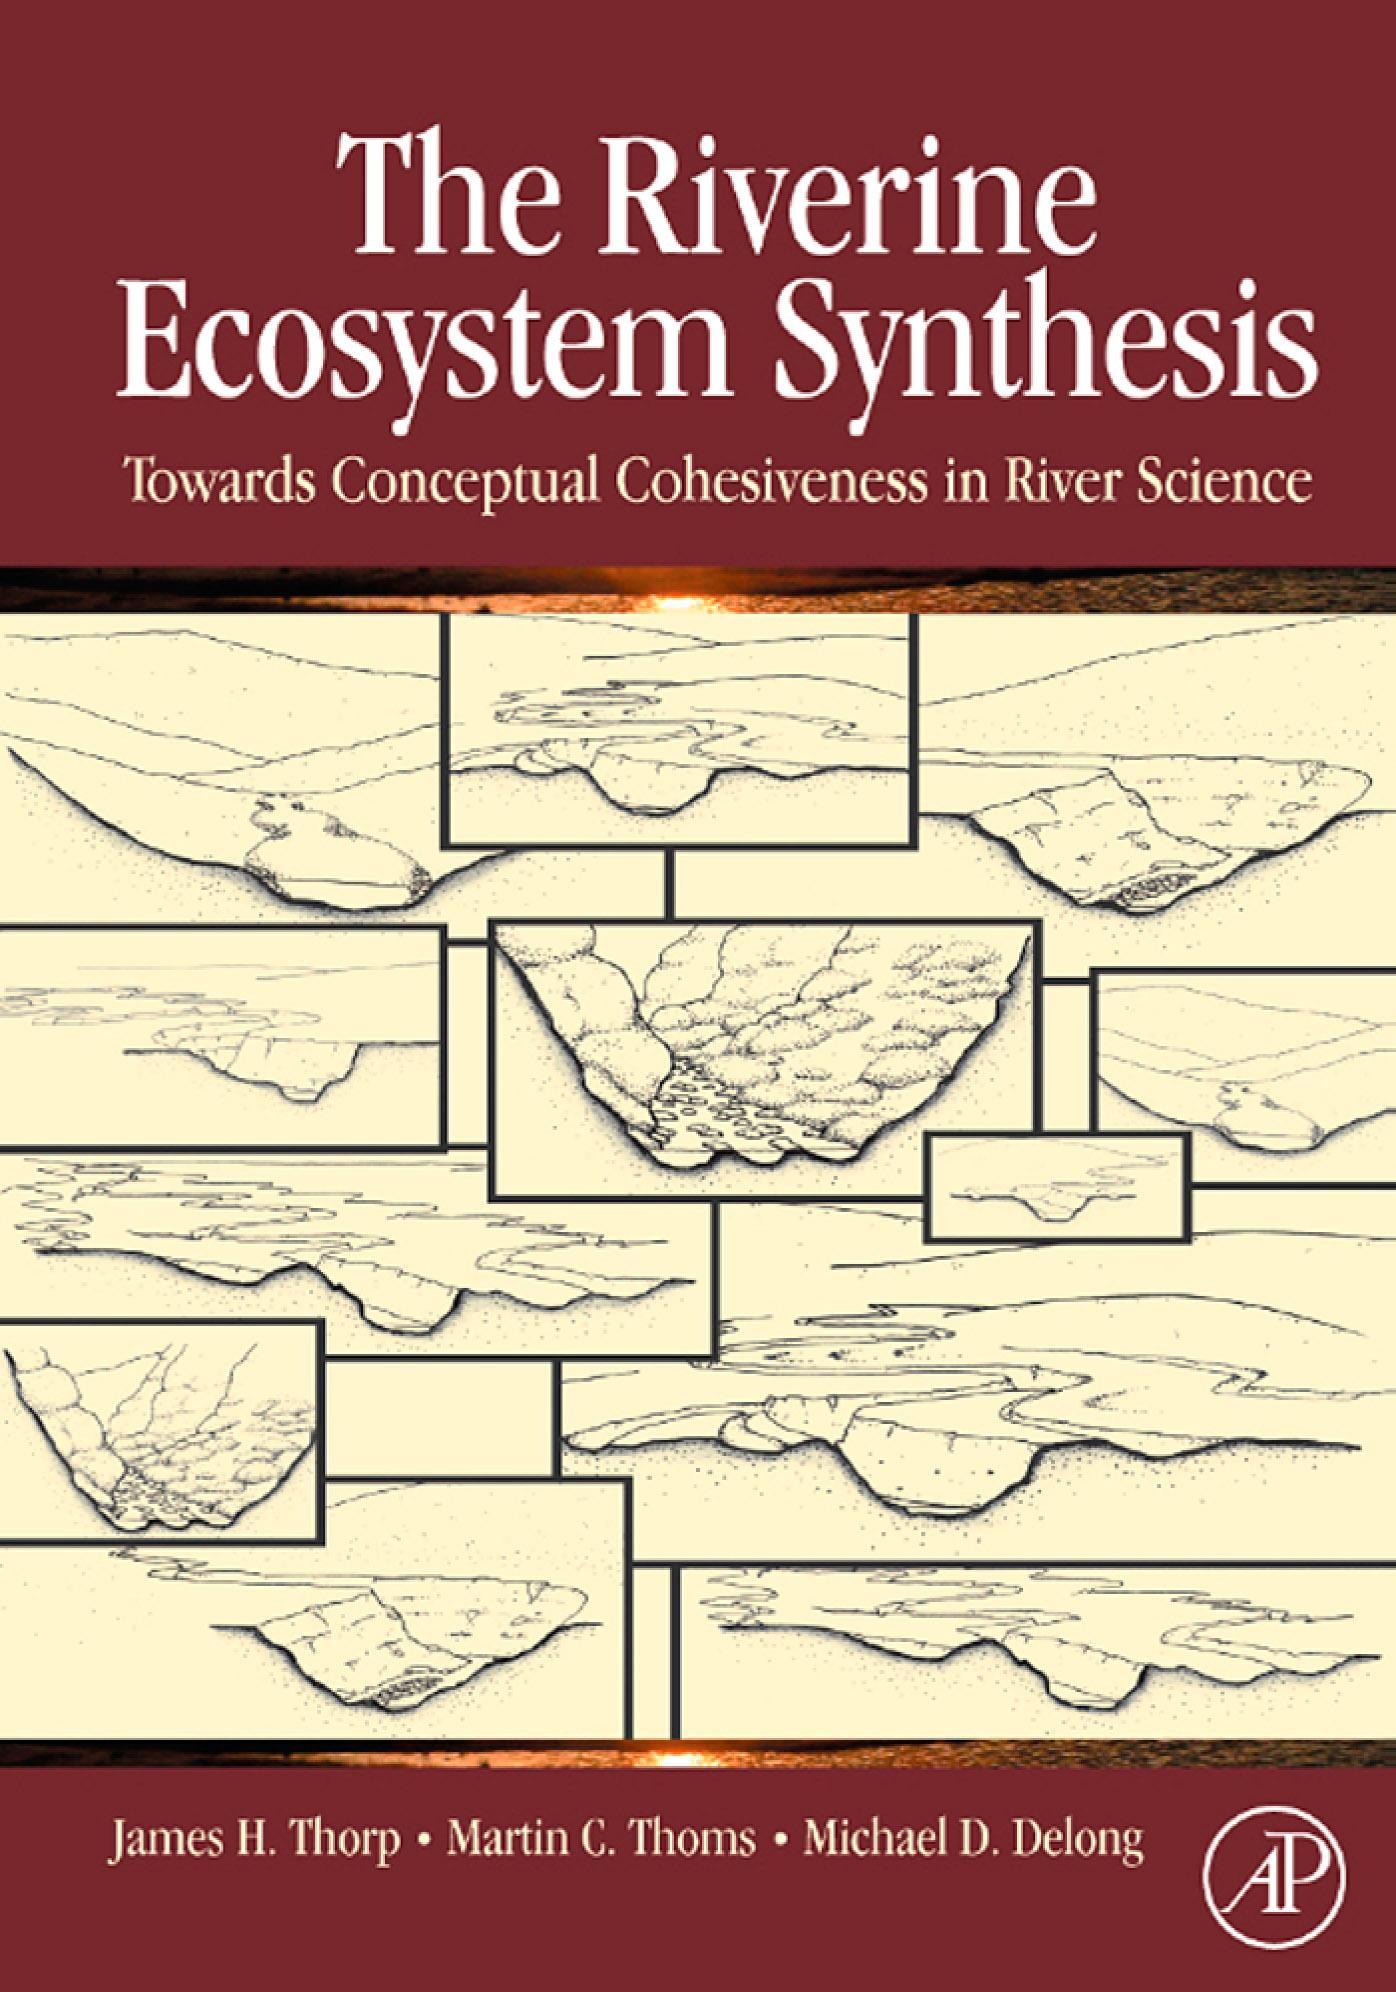 The Riverine Ecosystem Synthesis: Toward Conceptual Cohesiveness in River Science EB9780080888002